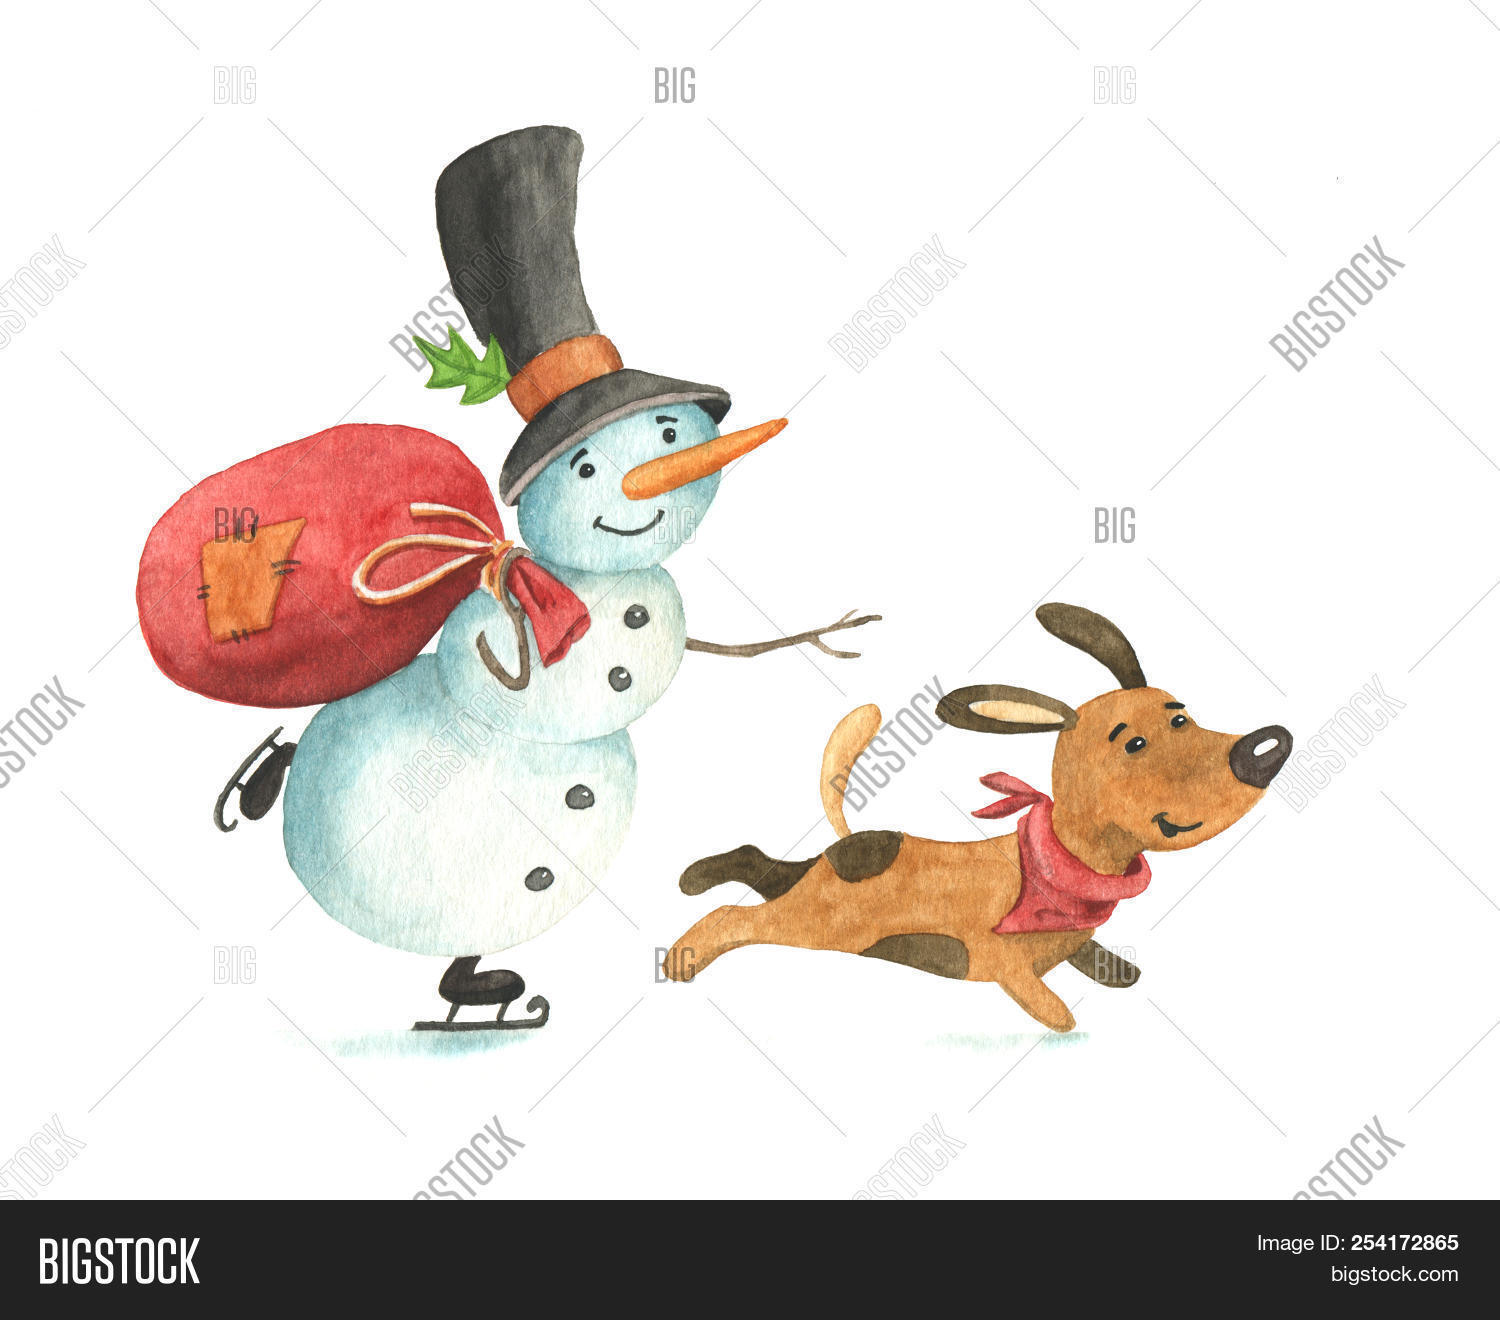 8b93427f0a3b6 Funny Snowman In Top Hat And Ice Skates With Red Bag And Cute Brown Dog  Hurrying